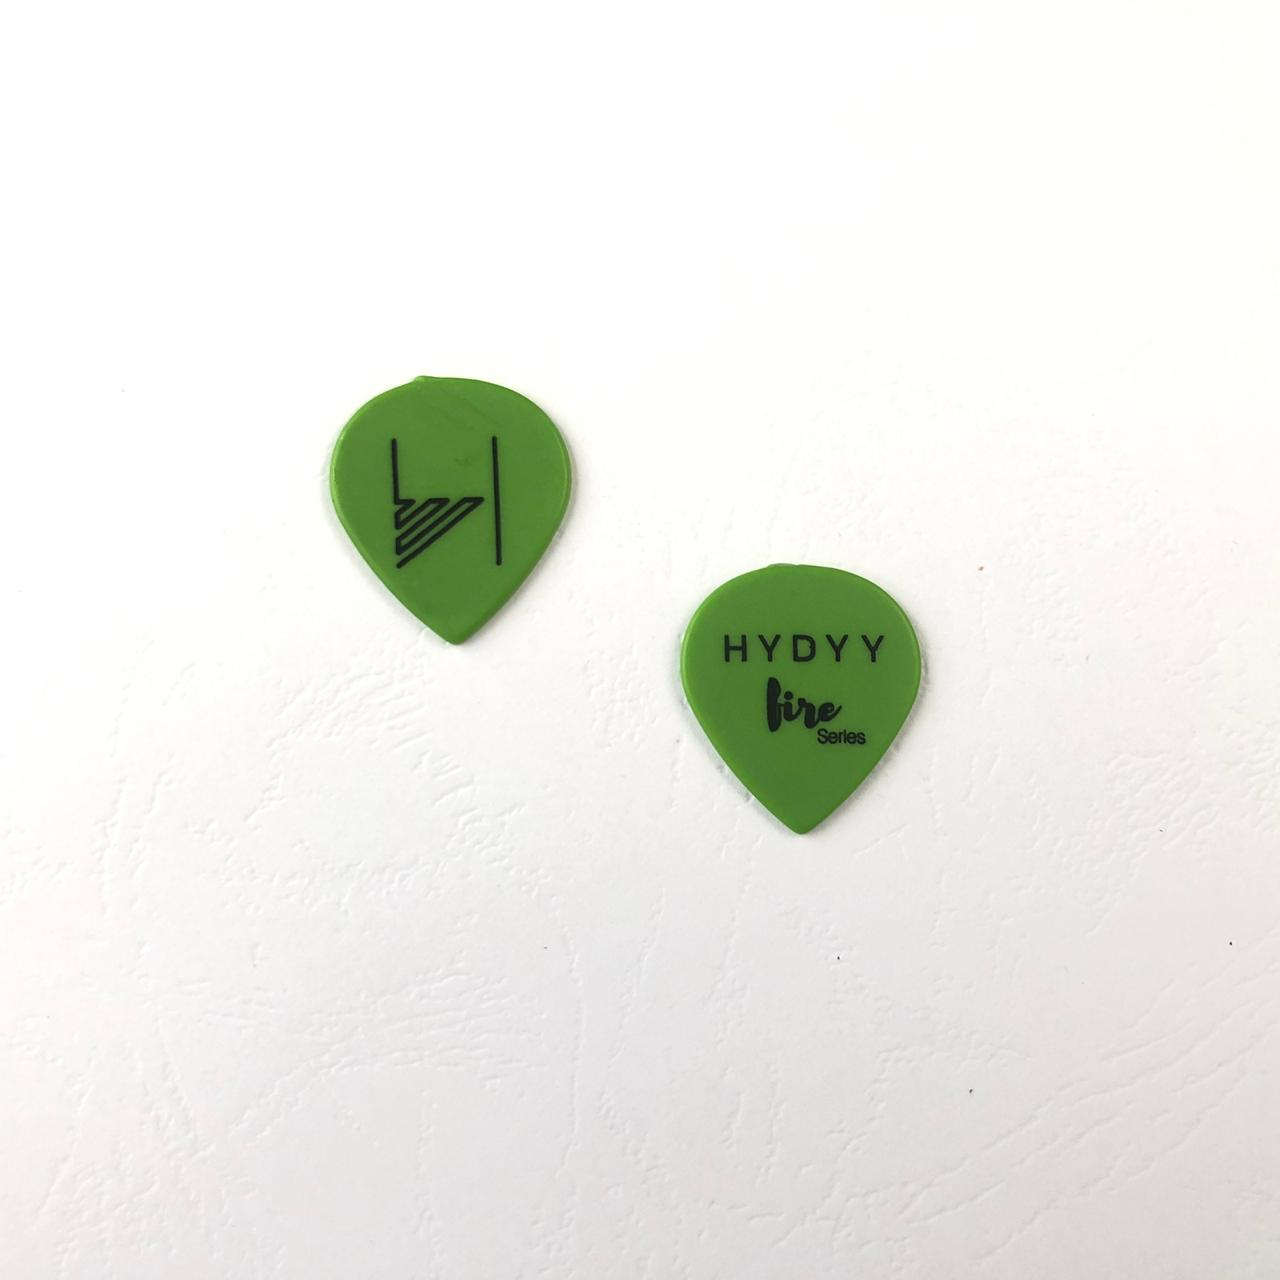 HYDYY Fire Series Delrin Guitar Picks